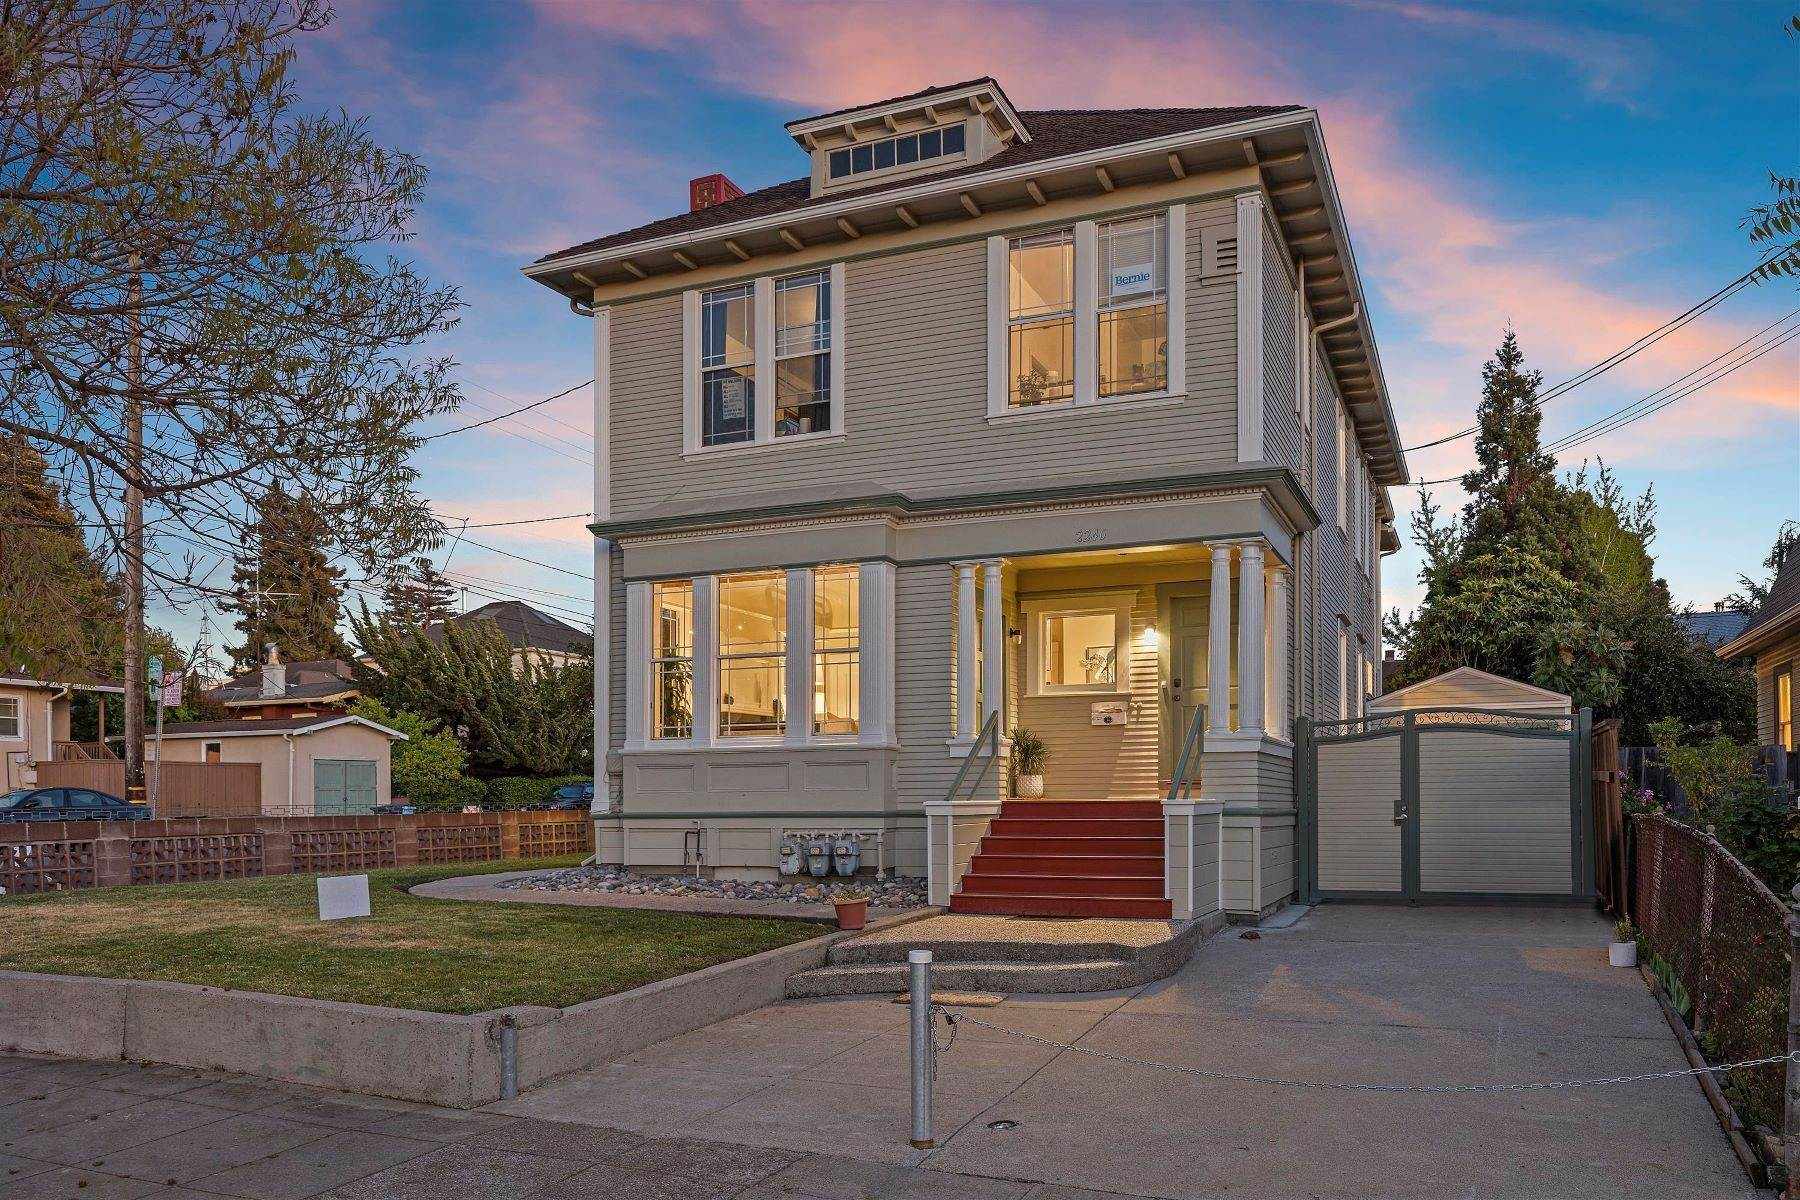 25. Property for Sale at Distinguished Triplex in an Ideal Berkeley Location 2240 Ward Street Berkeley, California 94705 United States